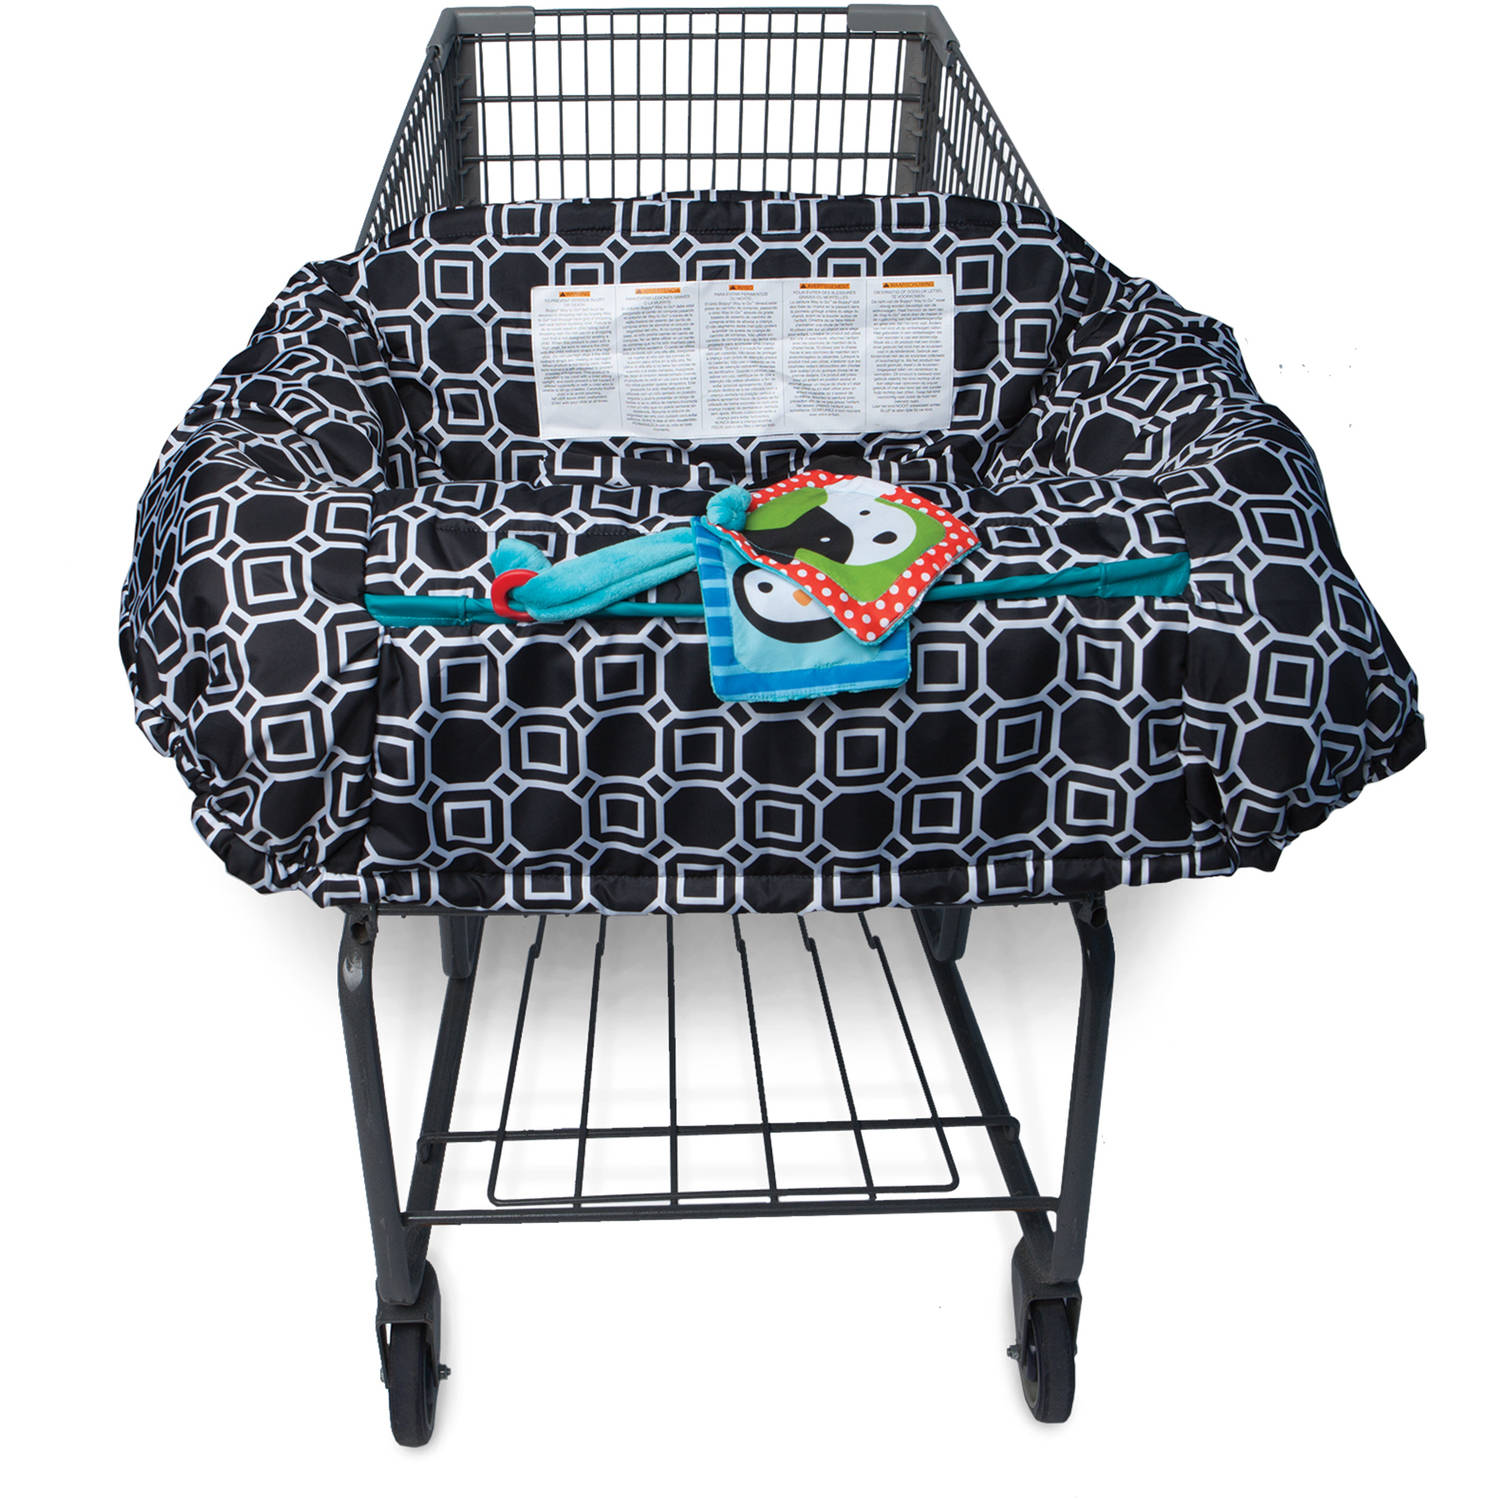 Boppy Shopping Cart Cover - City Squares Black and White